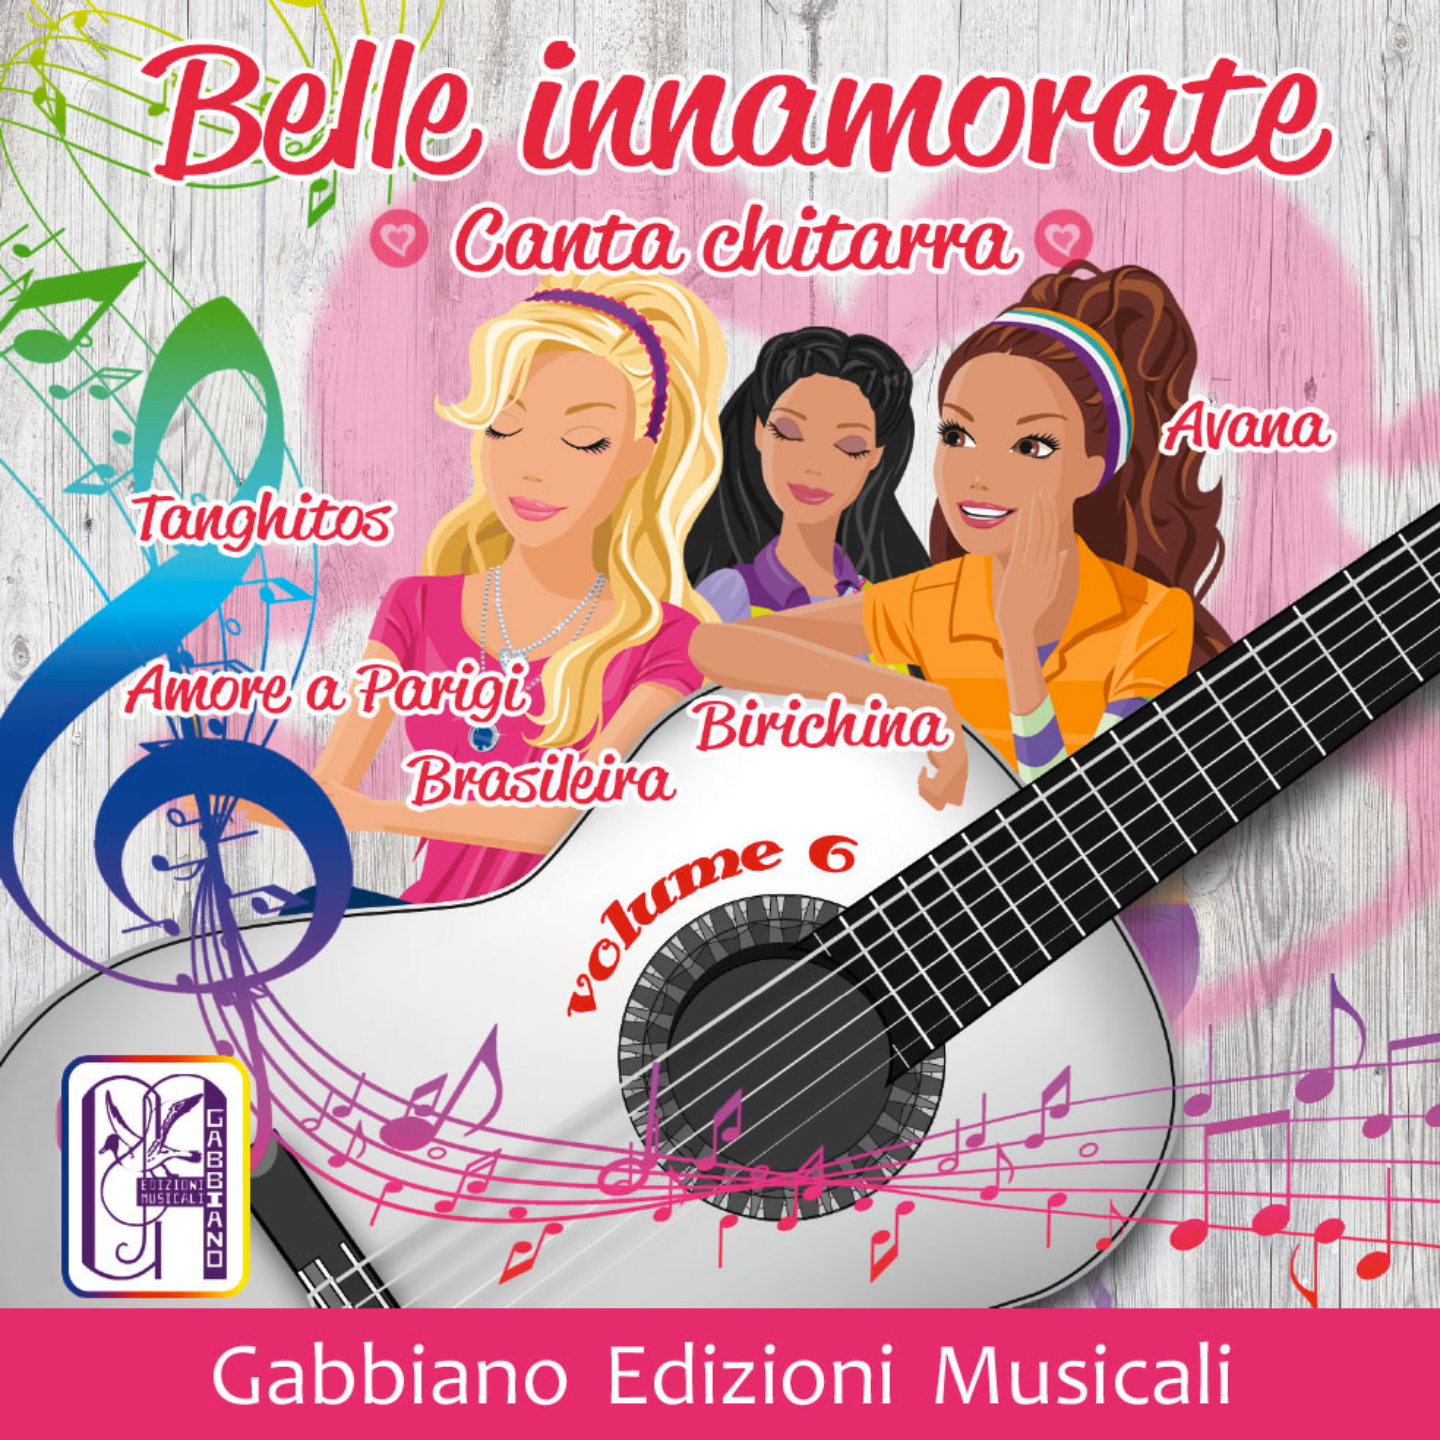 GBN006CD/CL - Belle innamorate - Volume 006